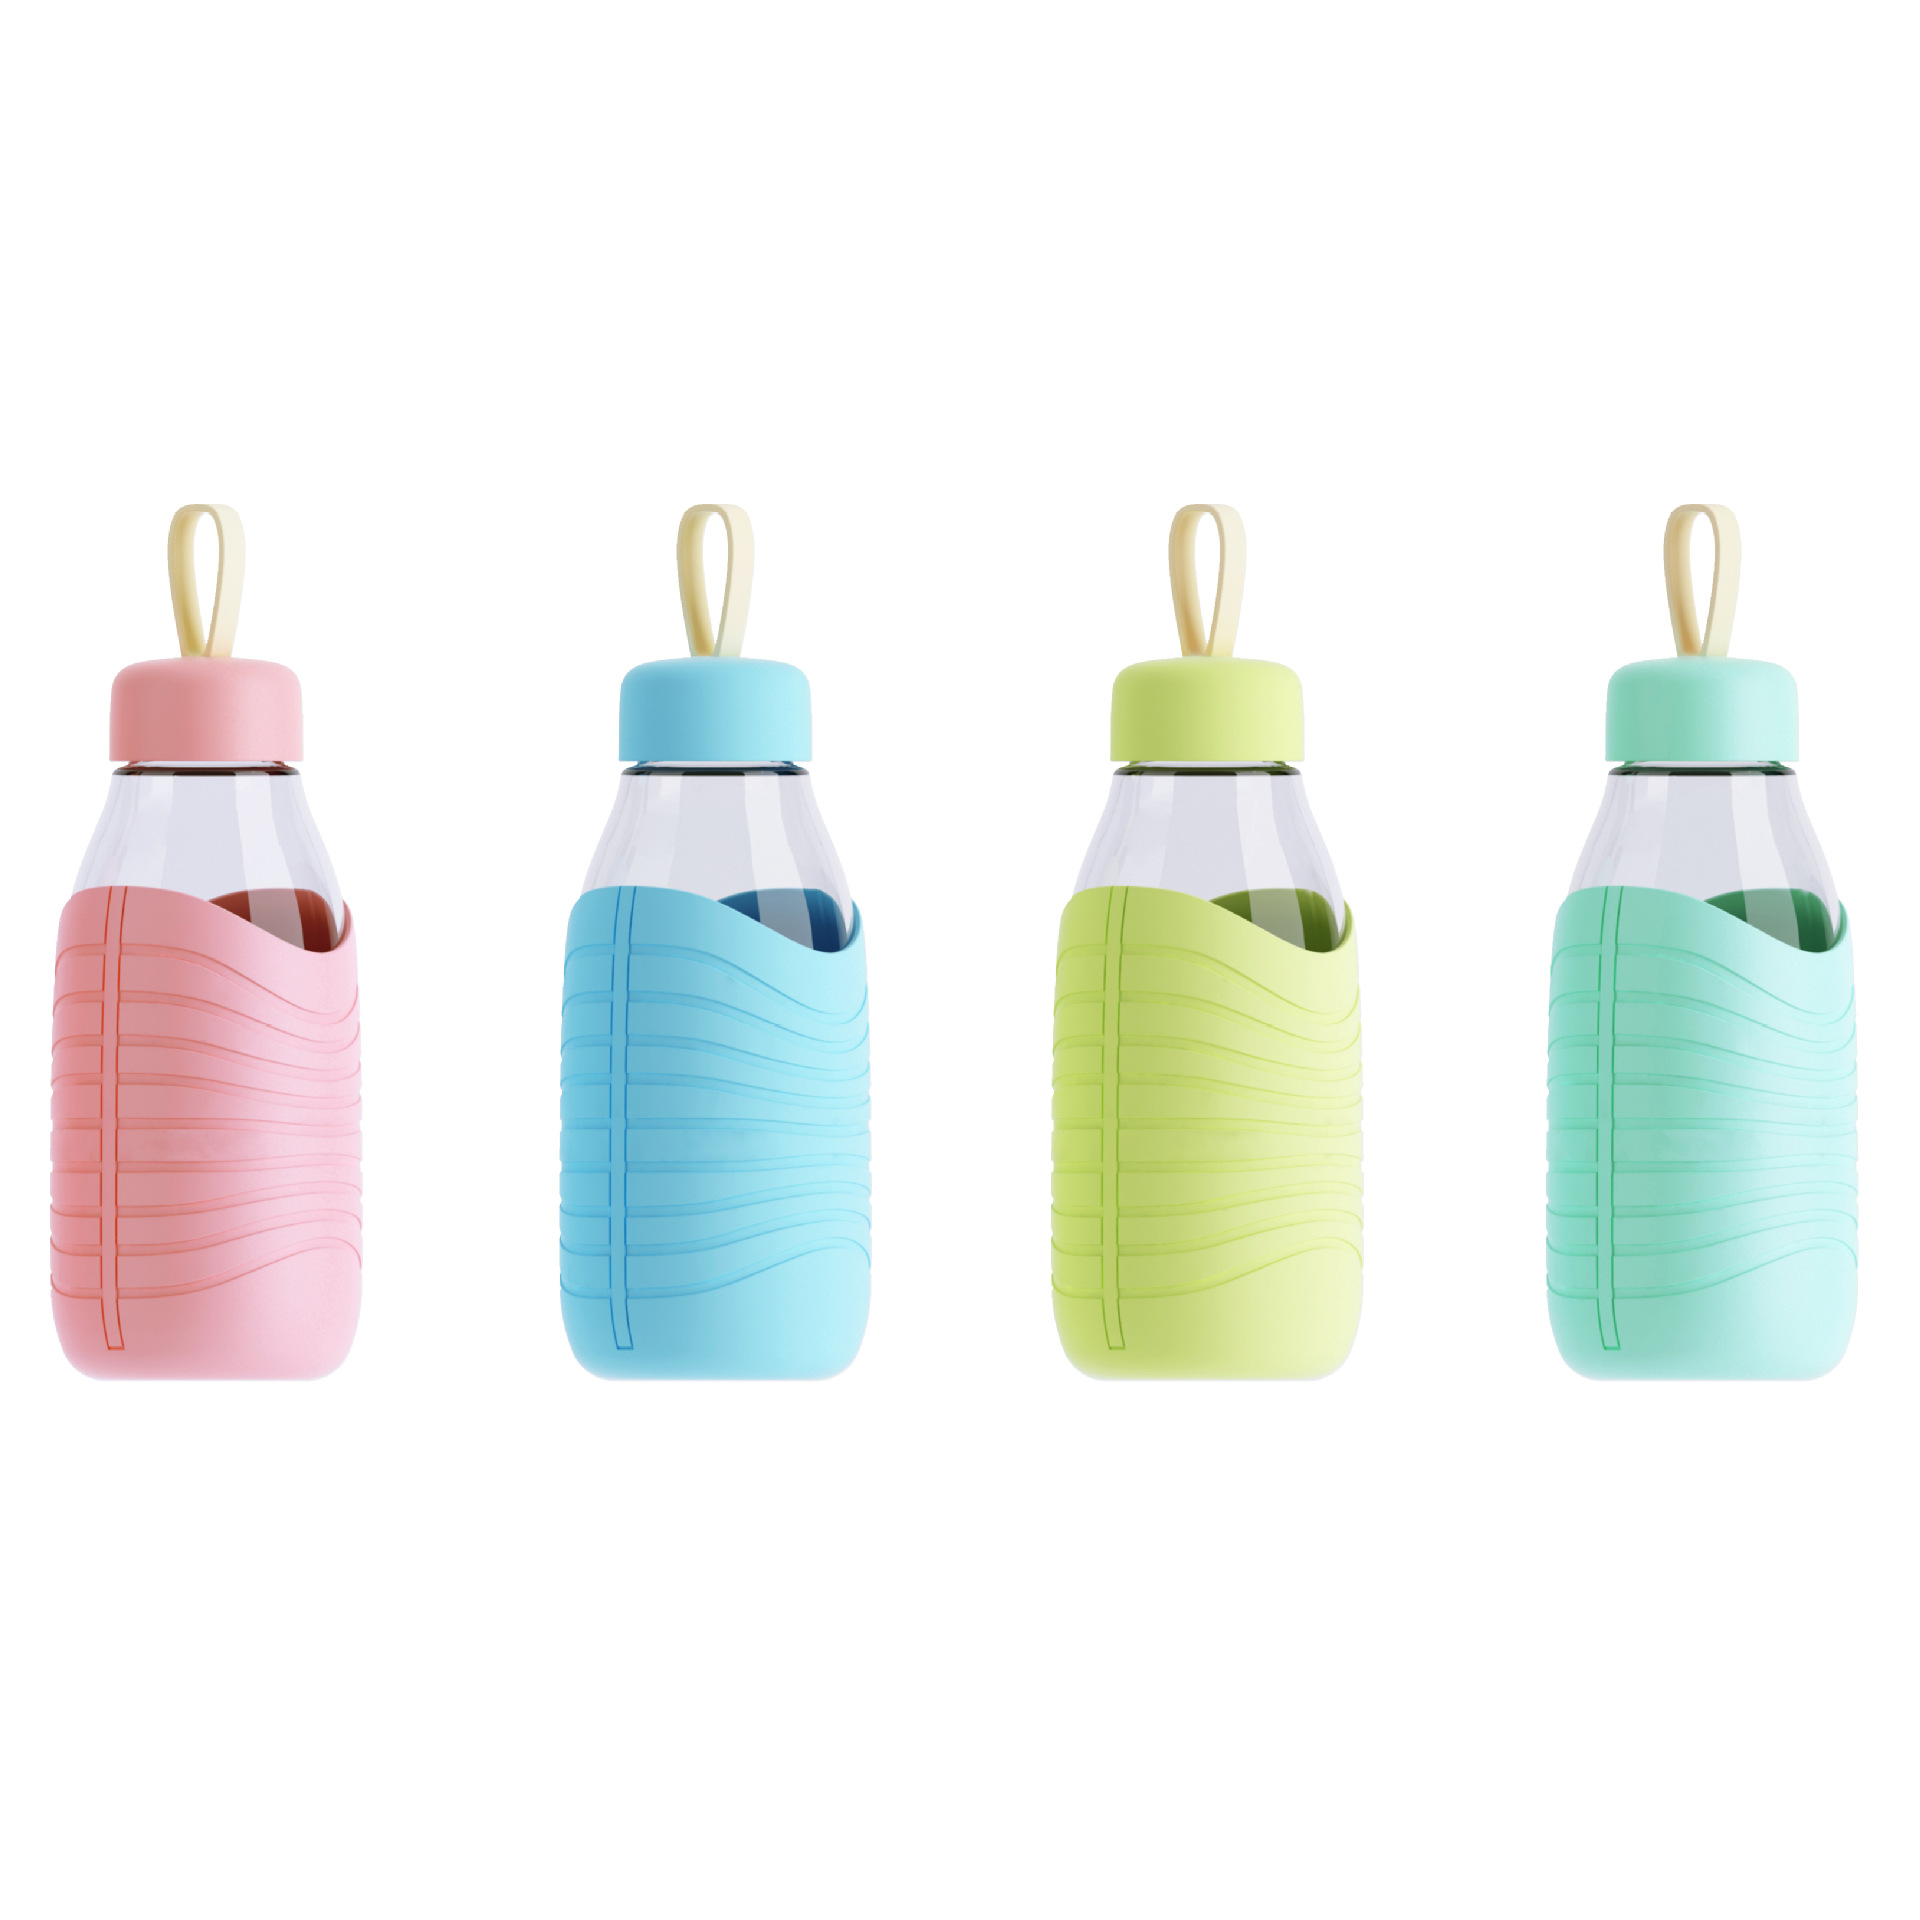 Hot 420ml Candy Color Glass Bottle Silicone Creative Mug Sweet Bottles Eco-Friendly Camping Travel Cup(China (Mainland))